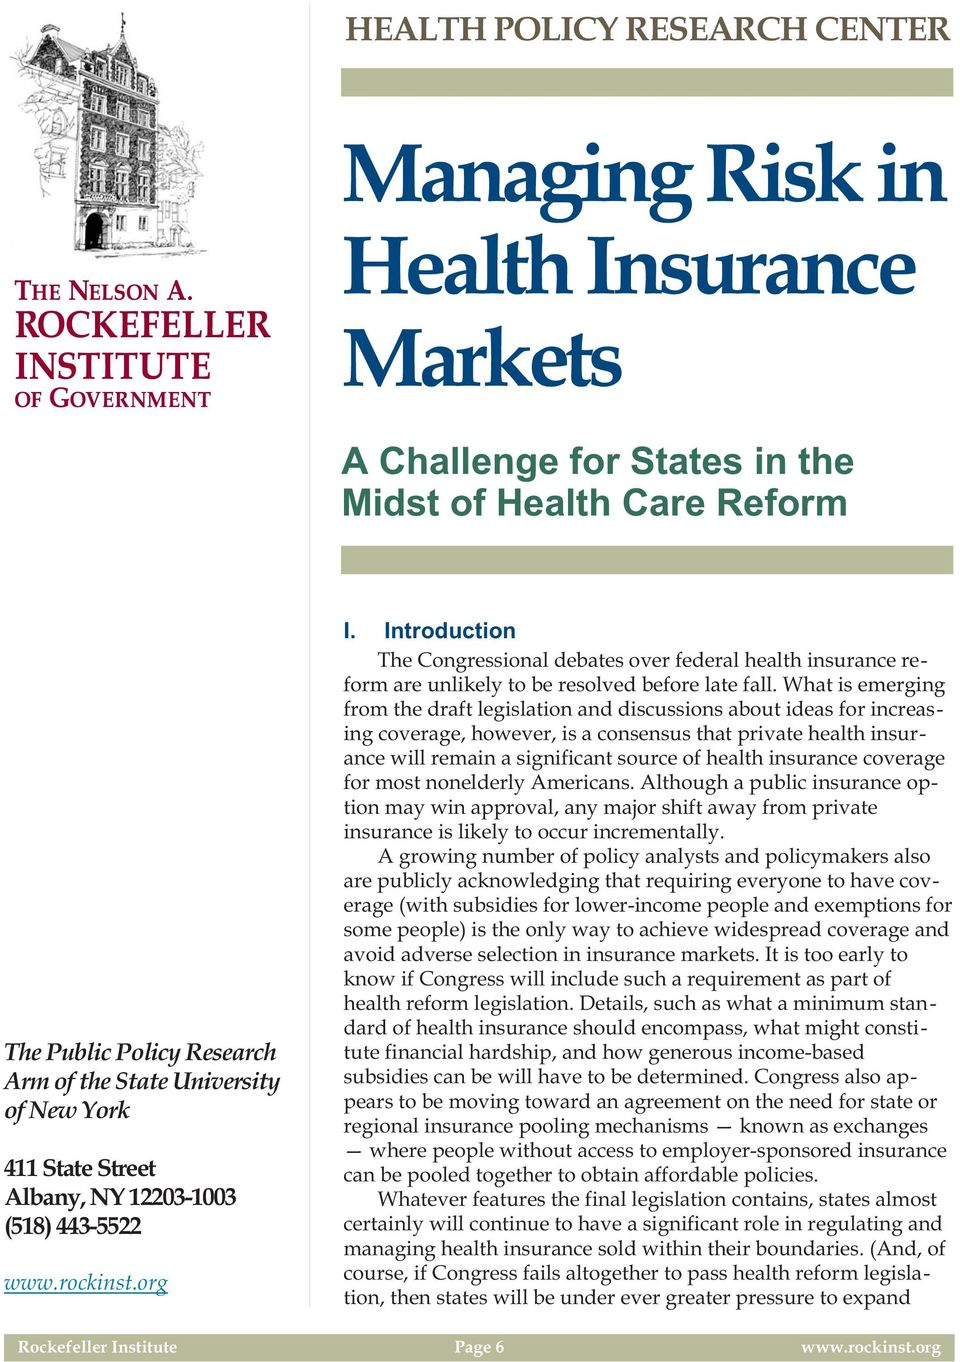 What is emerging from the draft legislation and discussions about ideas for increasing coverage, however, is a consensus that private health insurance will remain a significant source of health